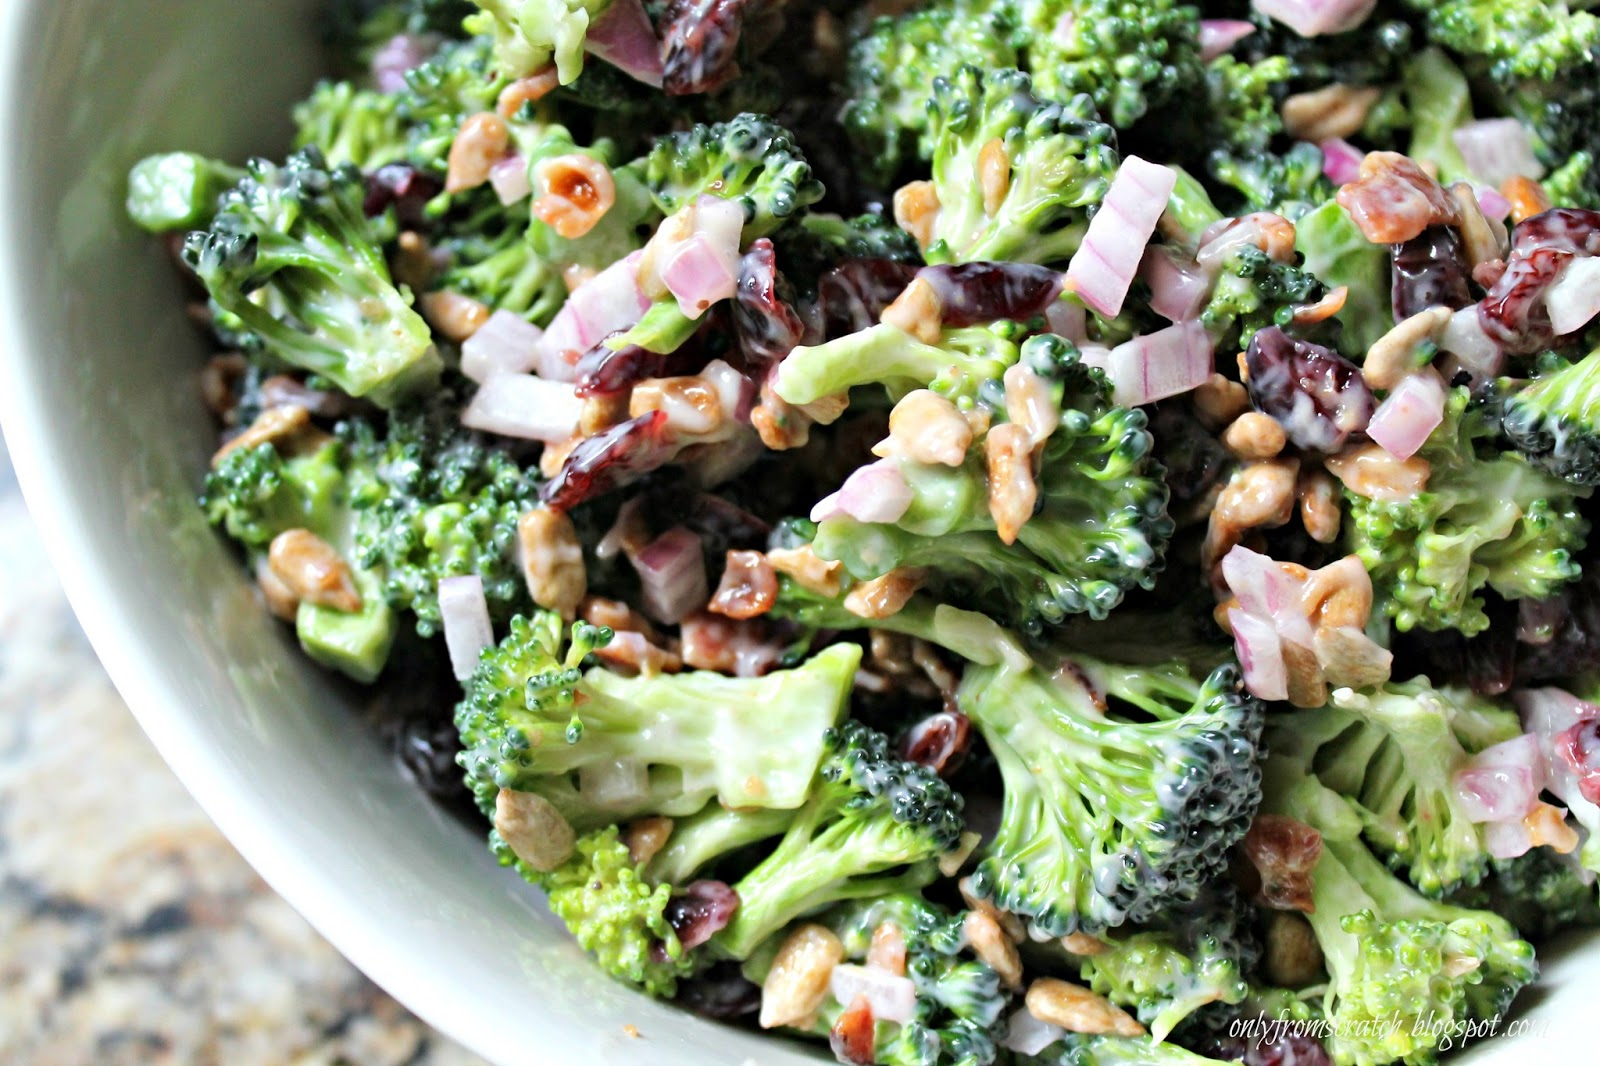 broccoli salad 1 head broccoli or about 5 broccoli crowns